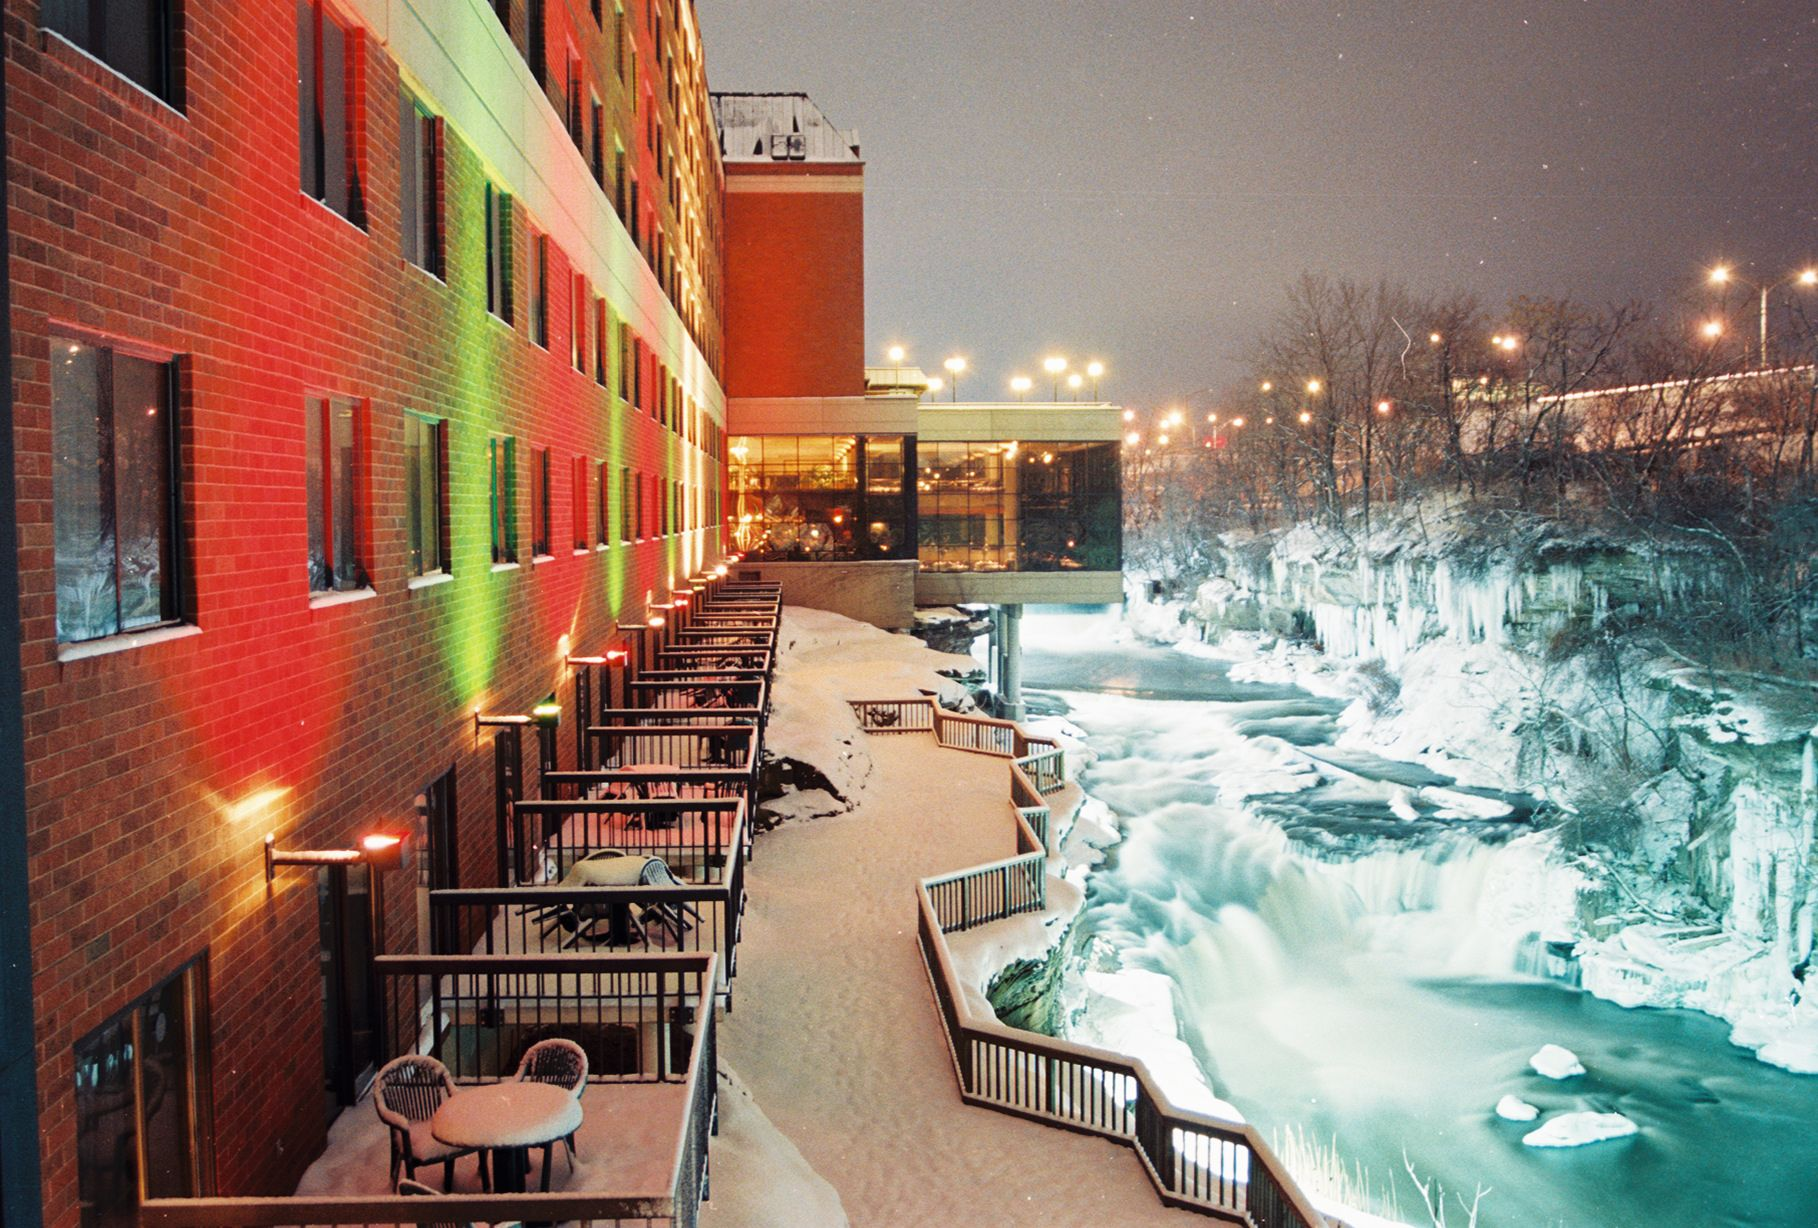 Experience All Suite Accommodations And An Excellent Northeast Ohio Location At Sheraton Suites Akron Cuyahoga Falls Award Winning Hotel